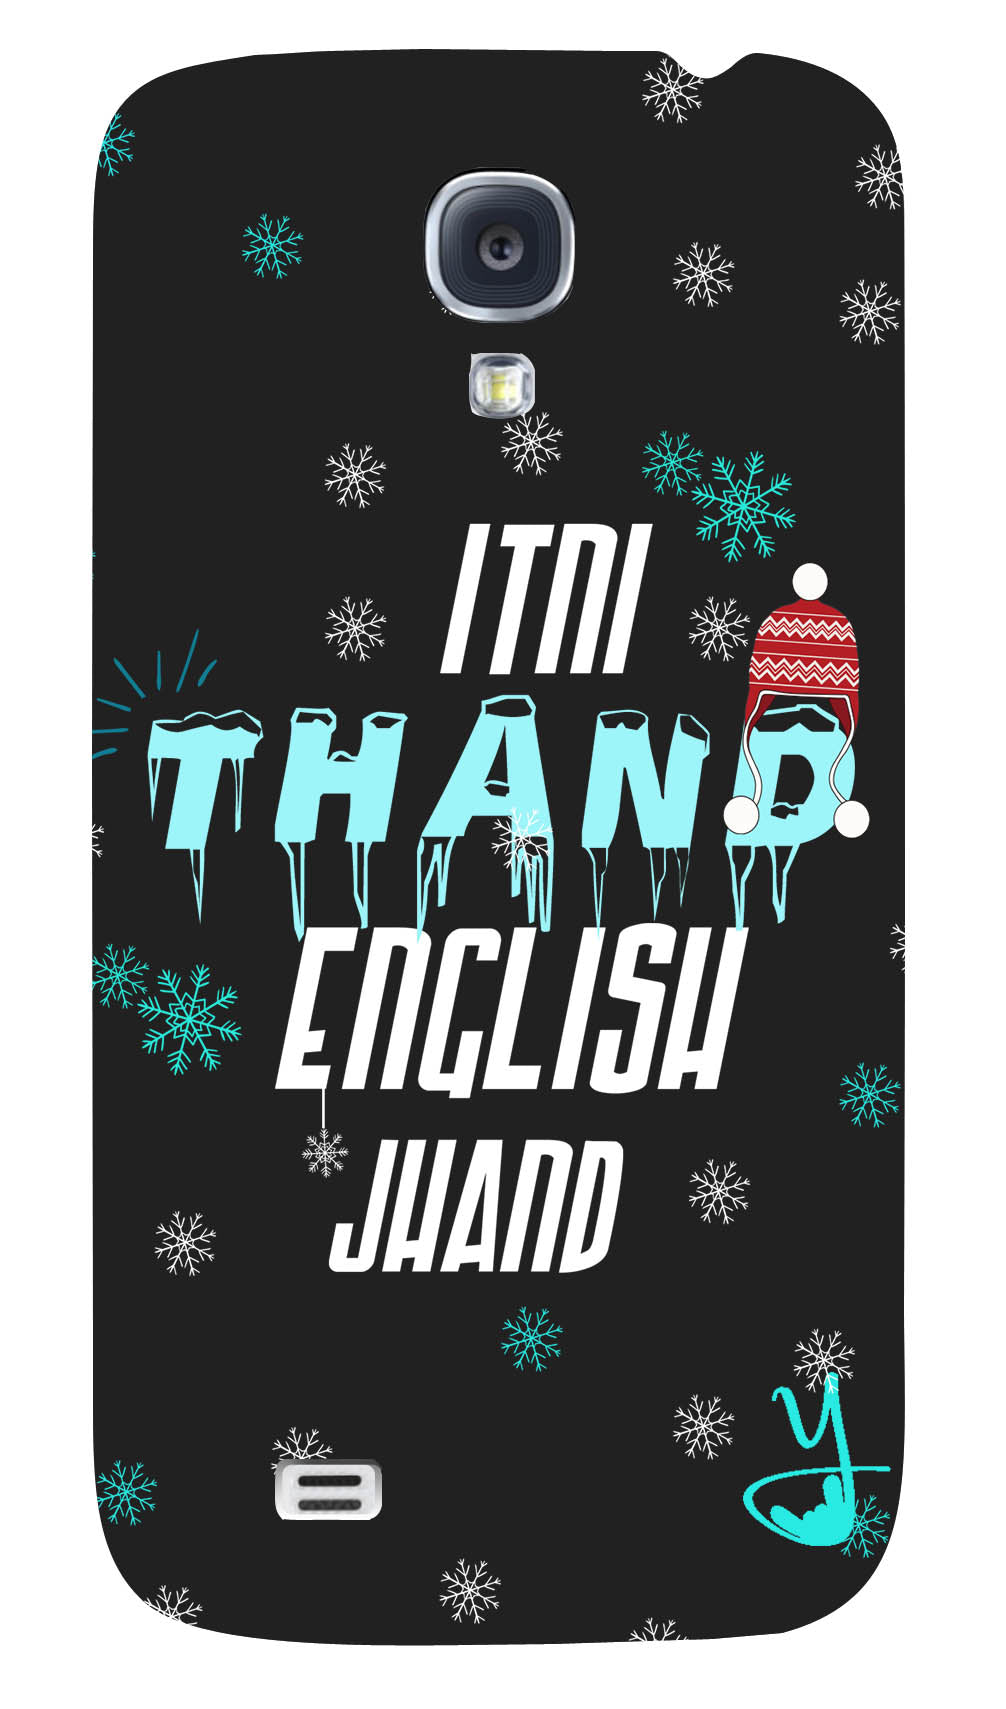 Itni Thand edition for Samsung galaxy s4